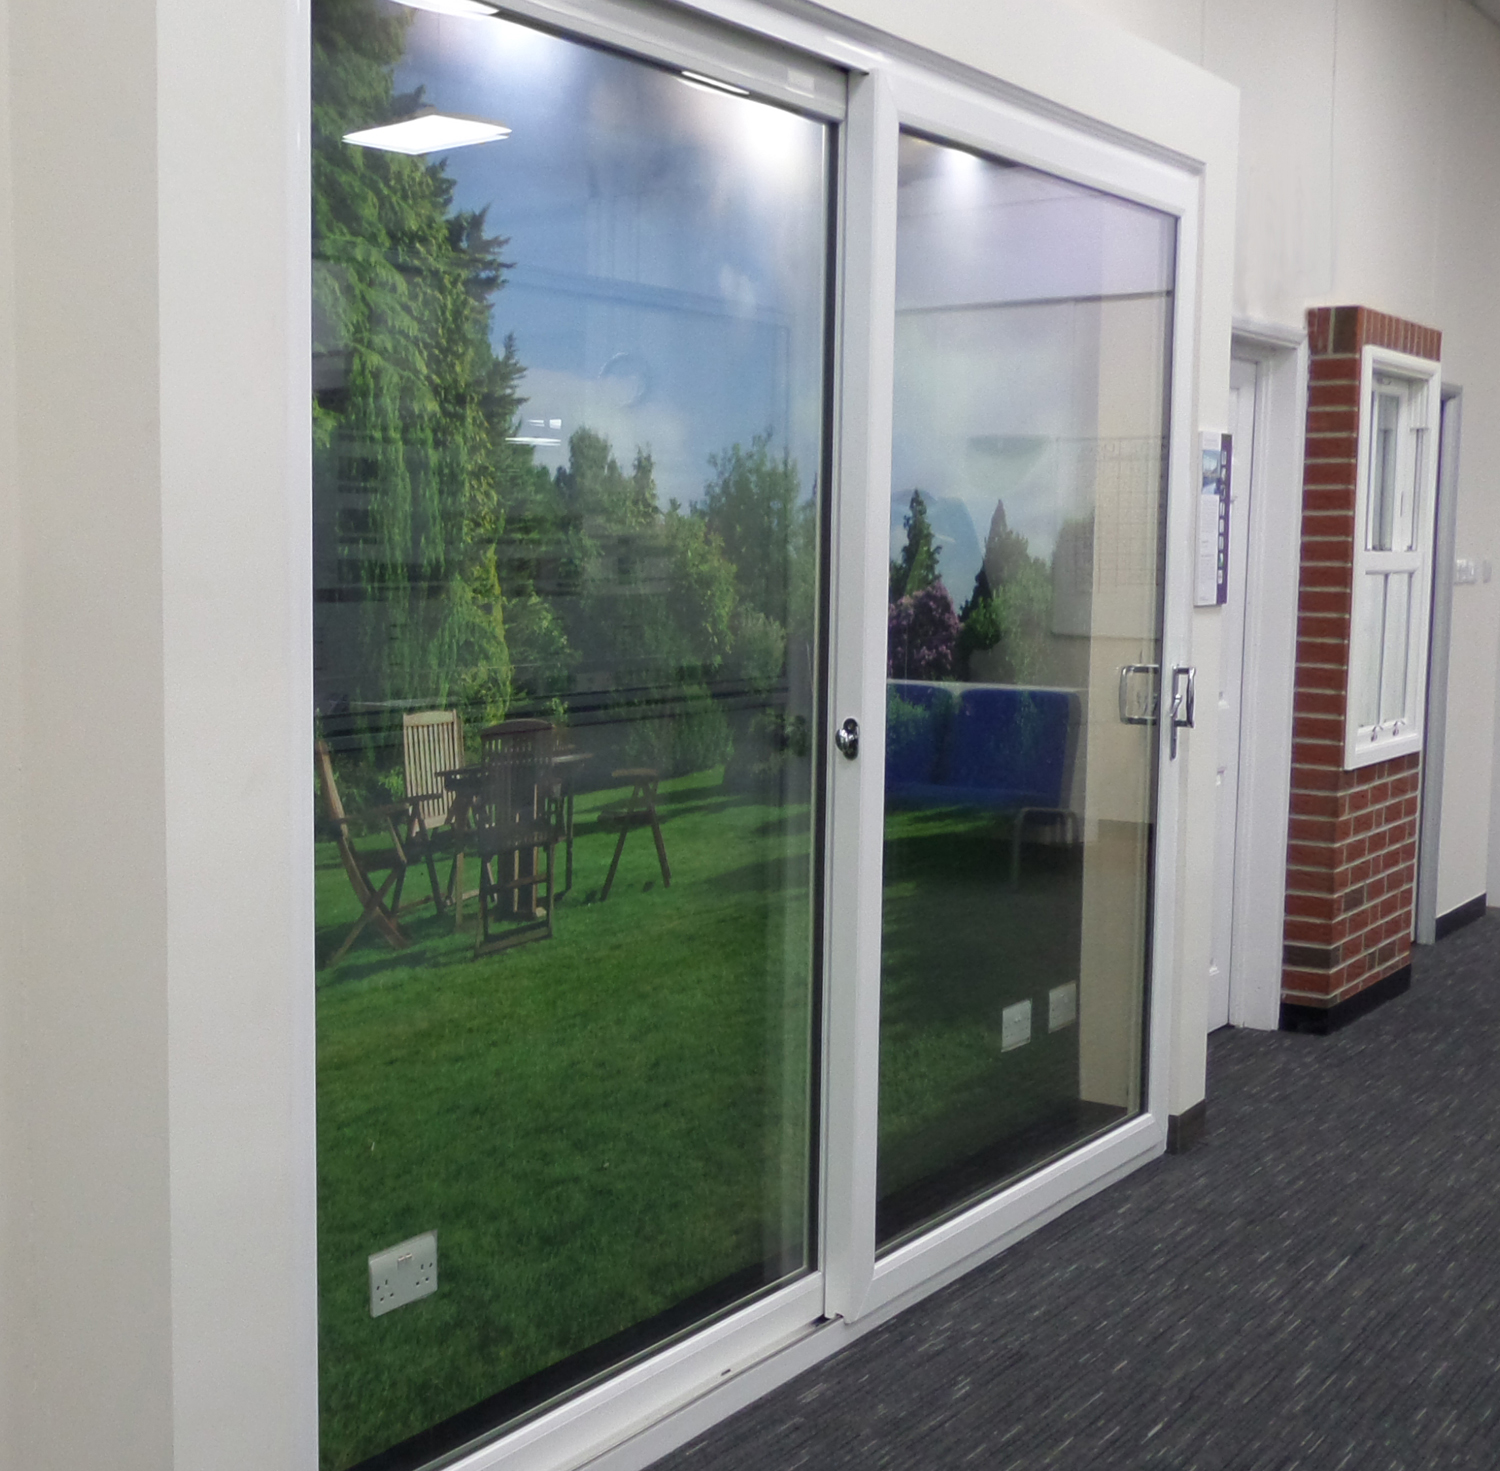 K mmerling chooses everglade for launch of first lifetime for Patio door companies